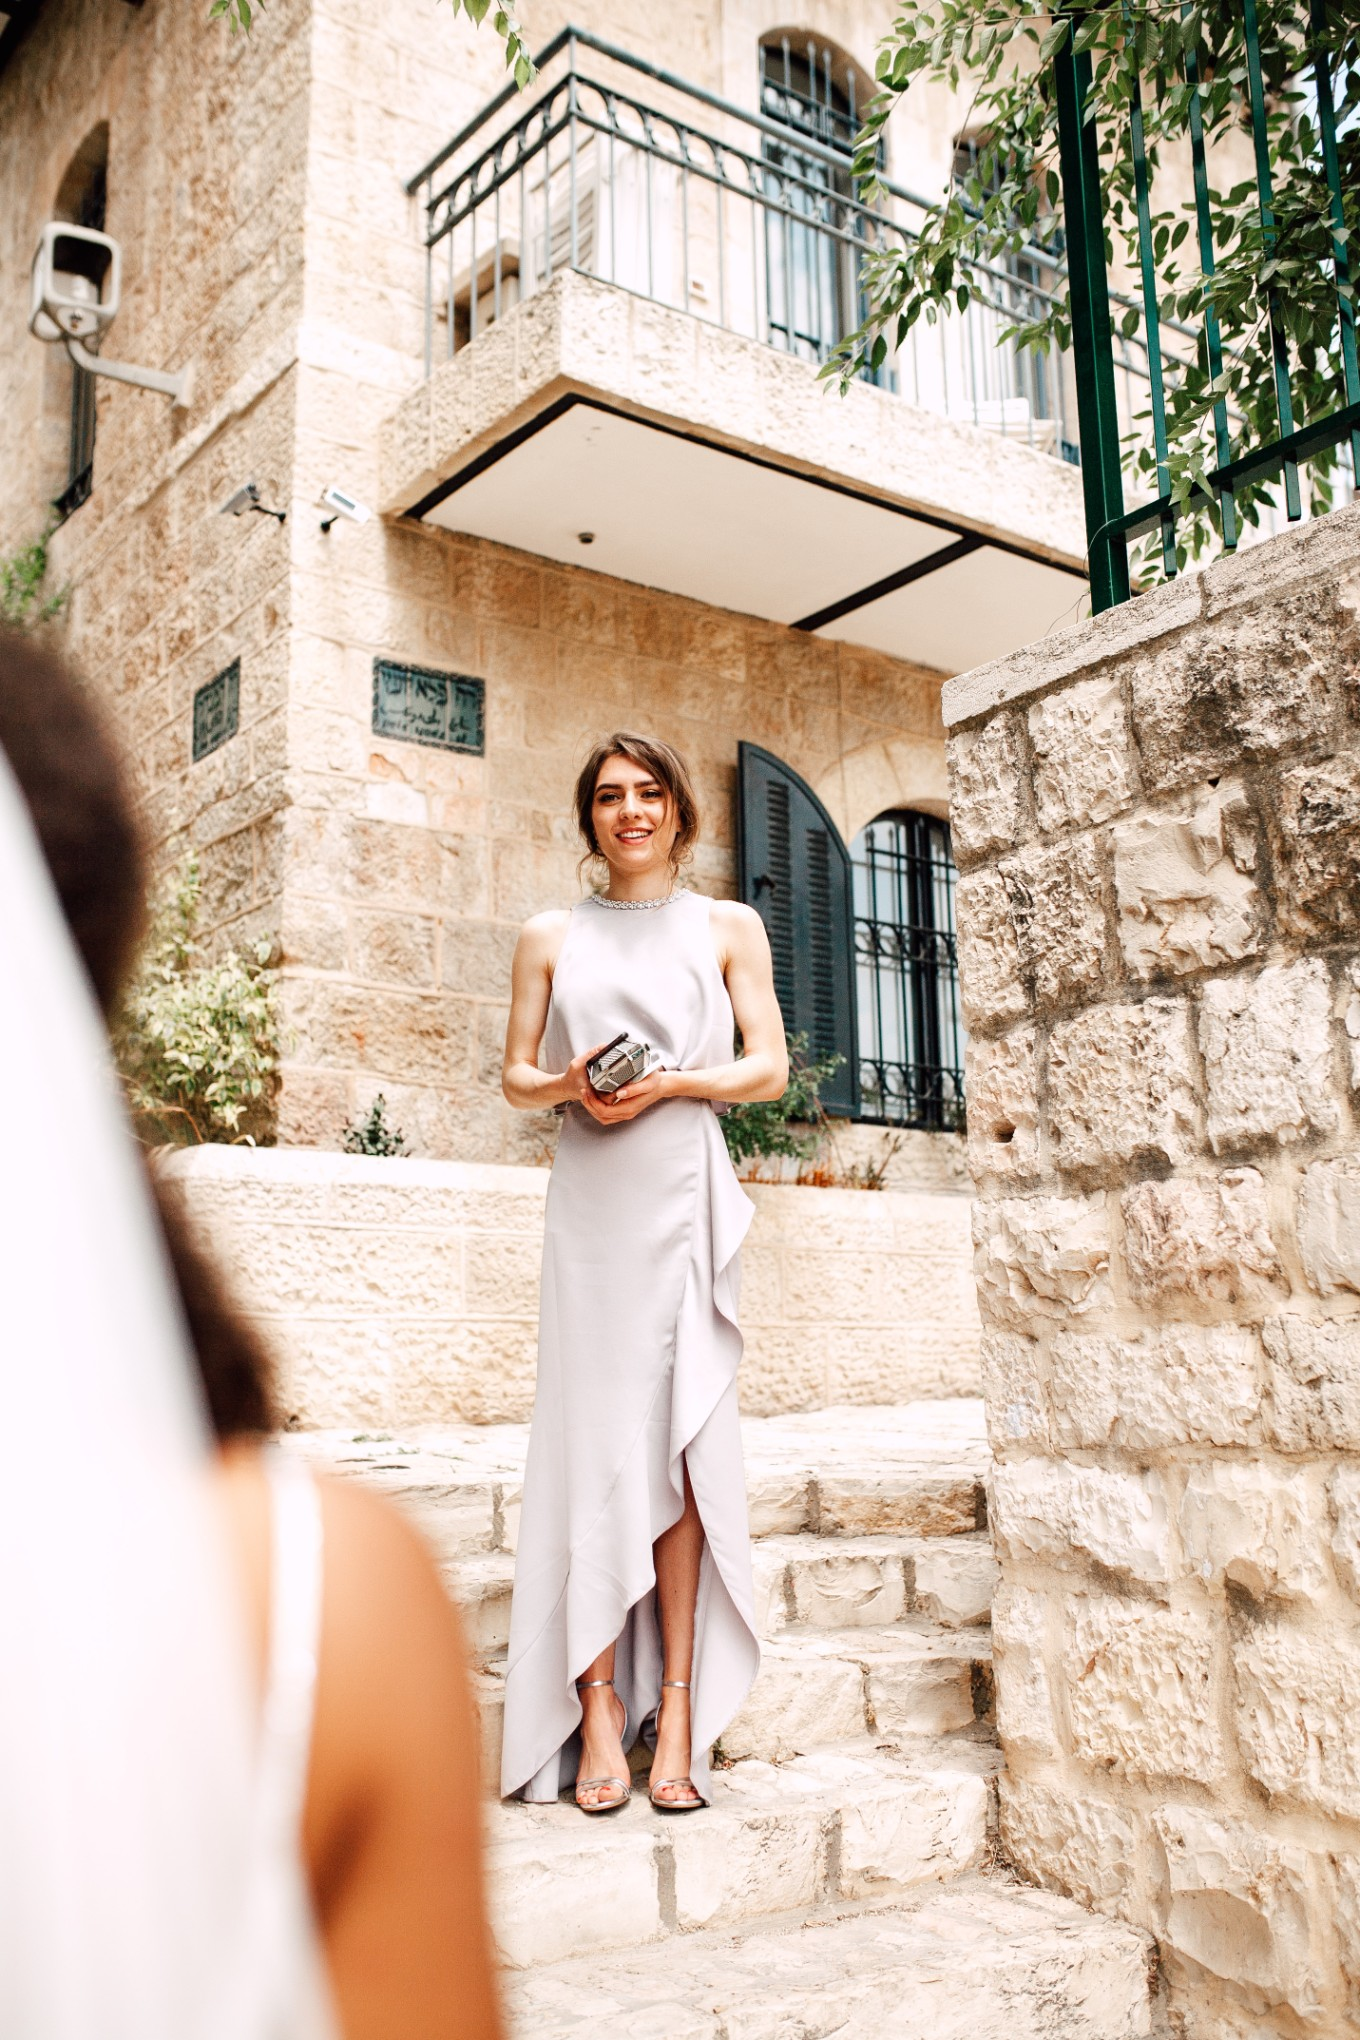 Jerusalem-Pia-Anna-Christian-Wedding-Photography-AD-T-3.jpg